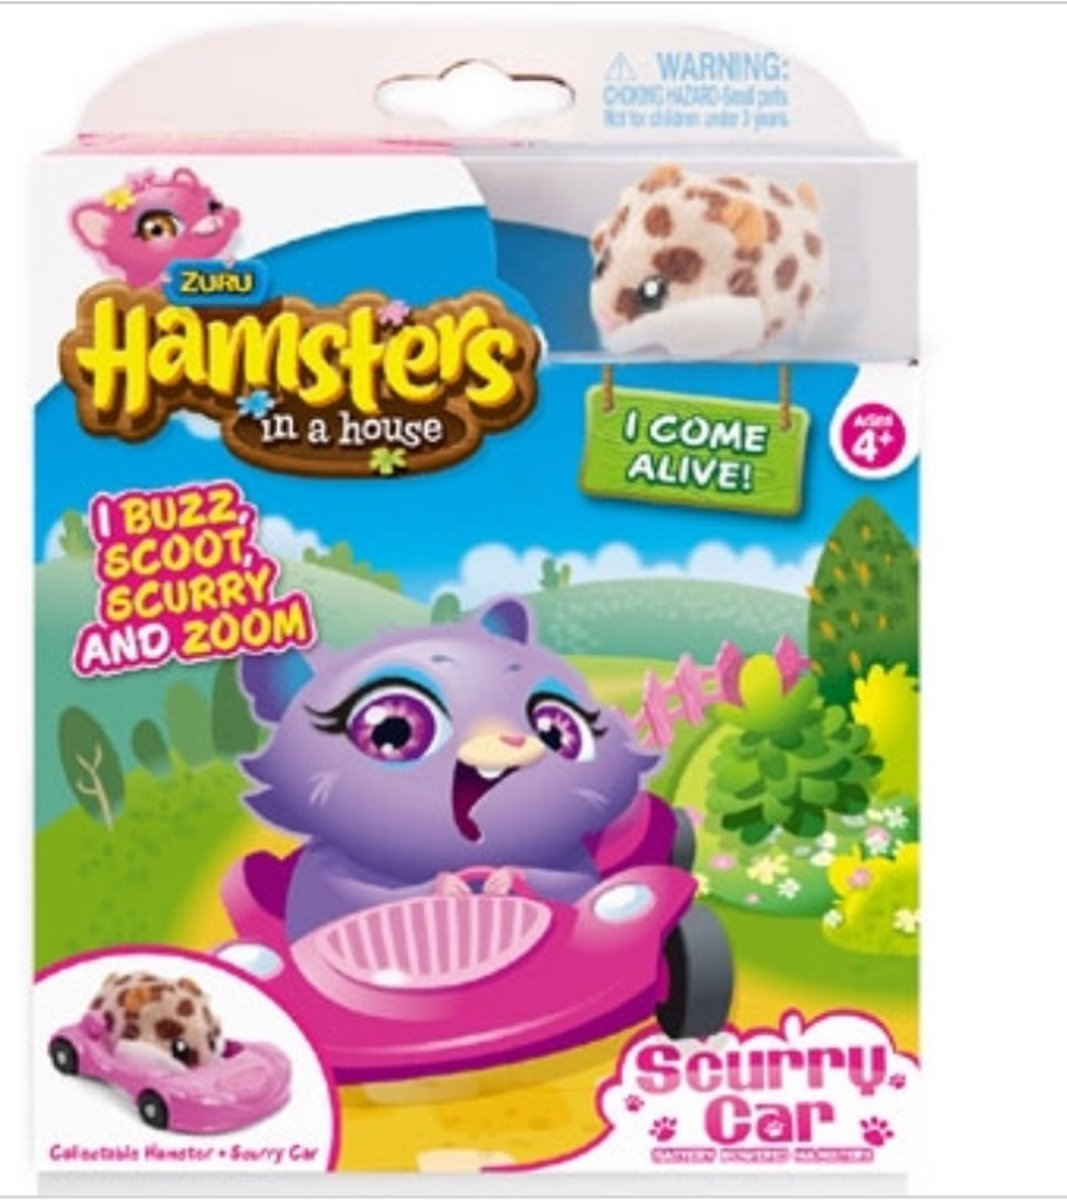 Hamsters in a house + Scurry Car